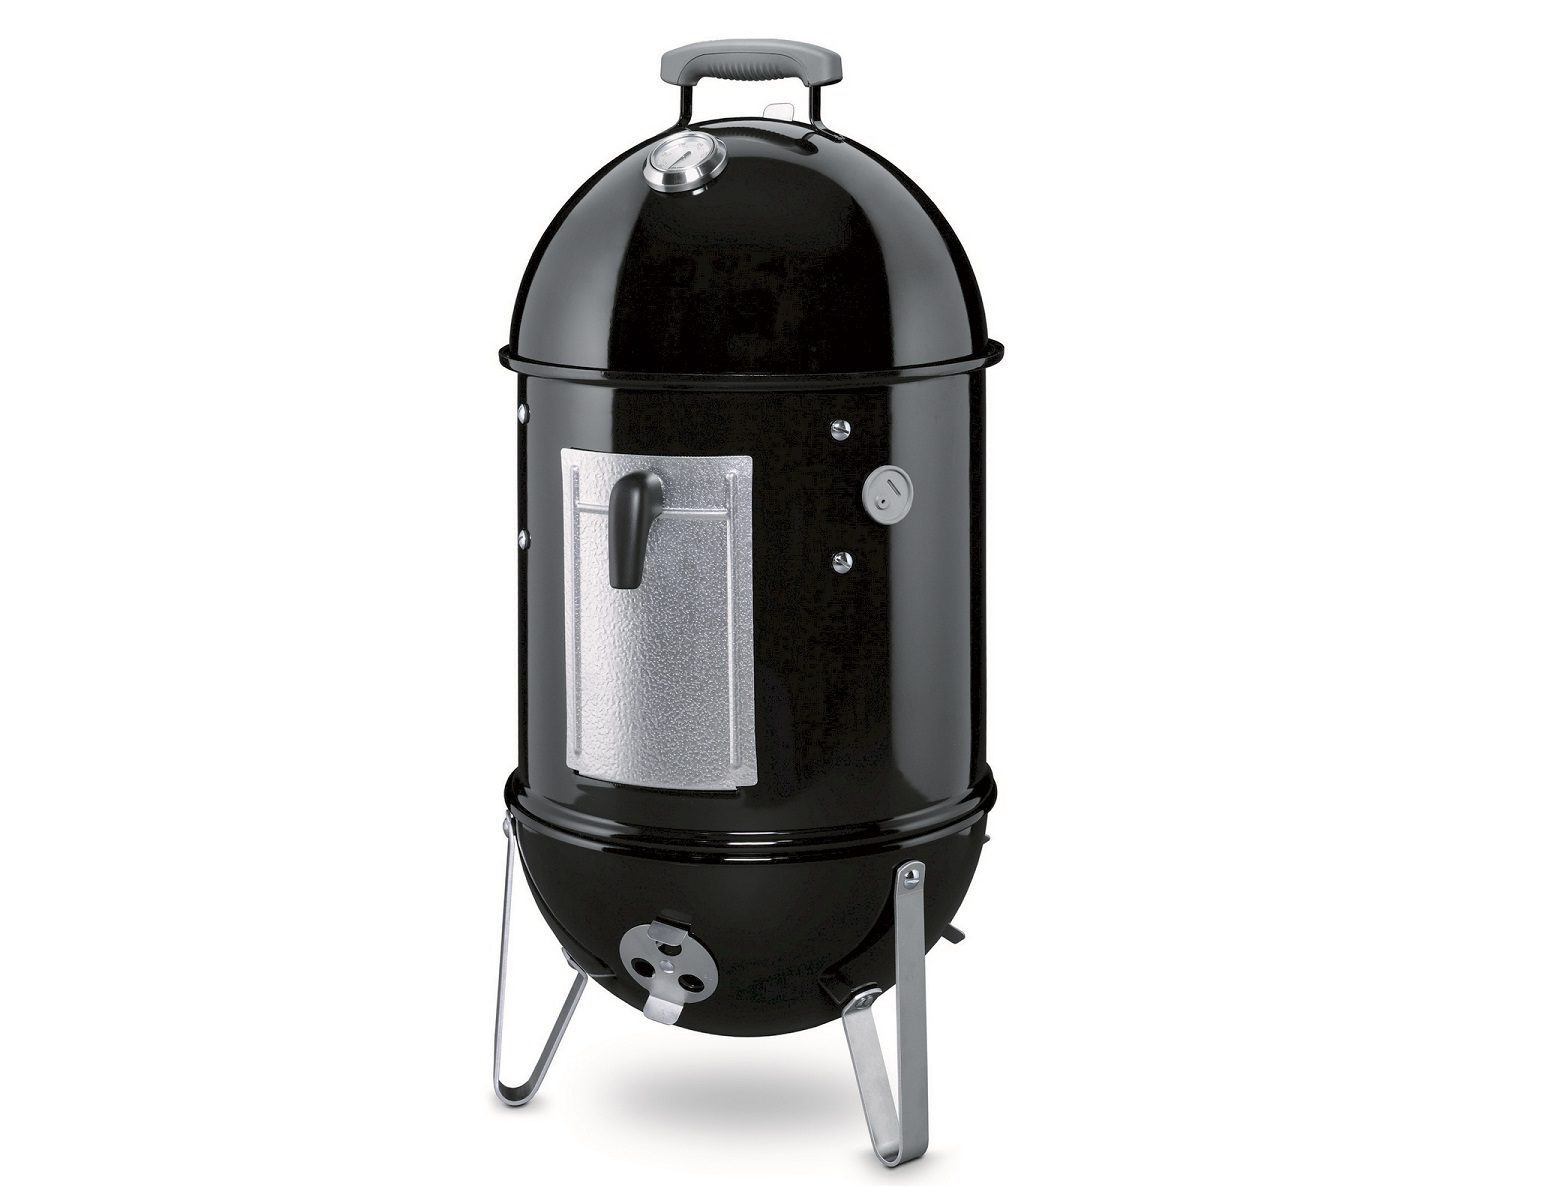 weber-smokey-mountain-cooker-37cm-711004